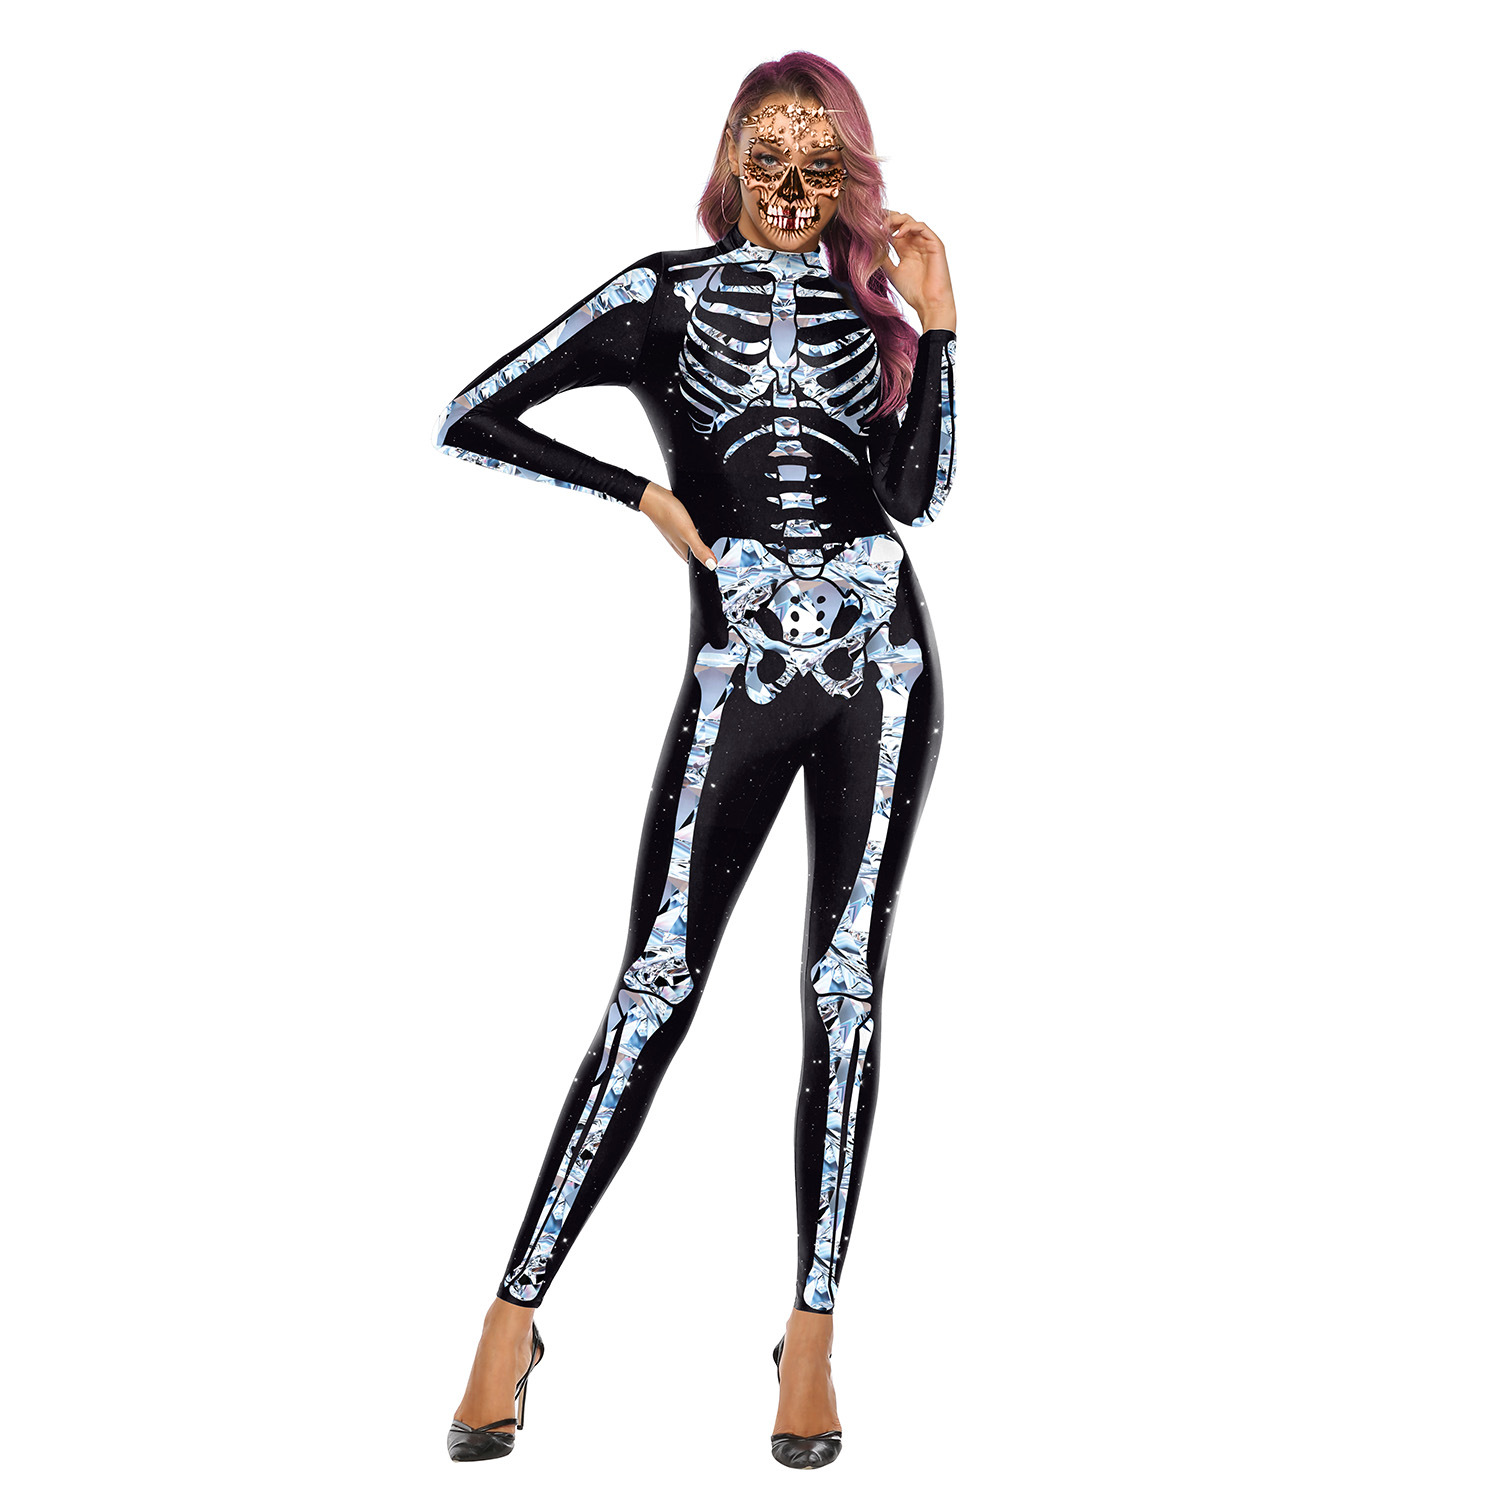 Female Skeleton Printing Jumpsuits Scary Cosplaying for Halloween Festival  WB142-004_M